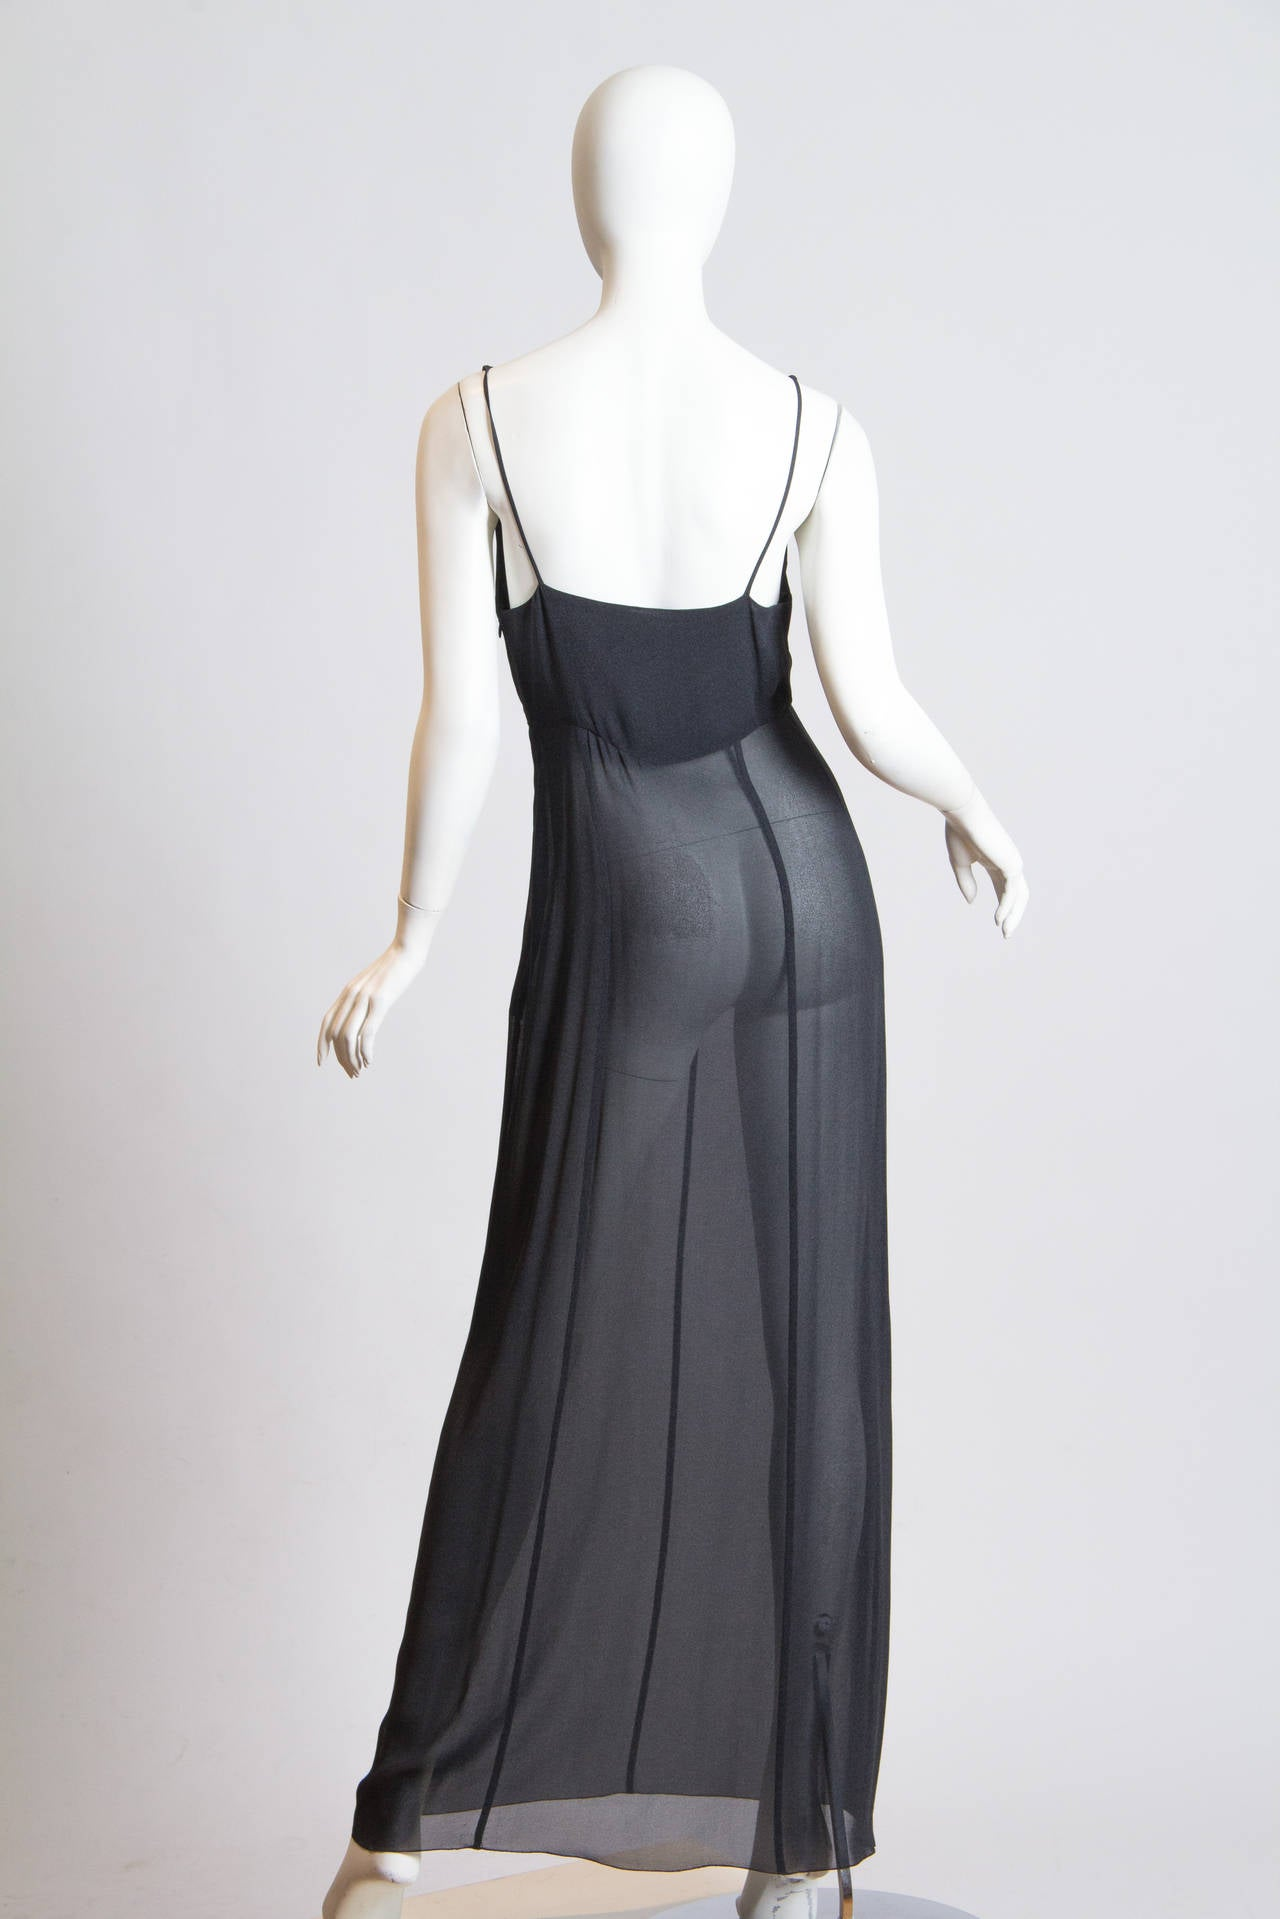 Women's Slate Grey Crepe Dress from Chanel For Sale